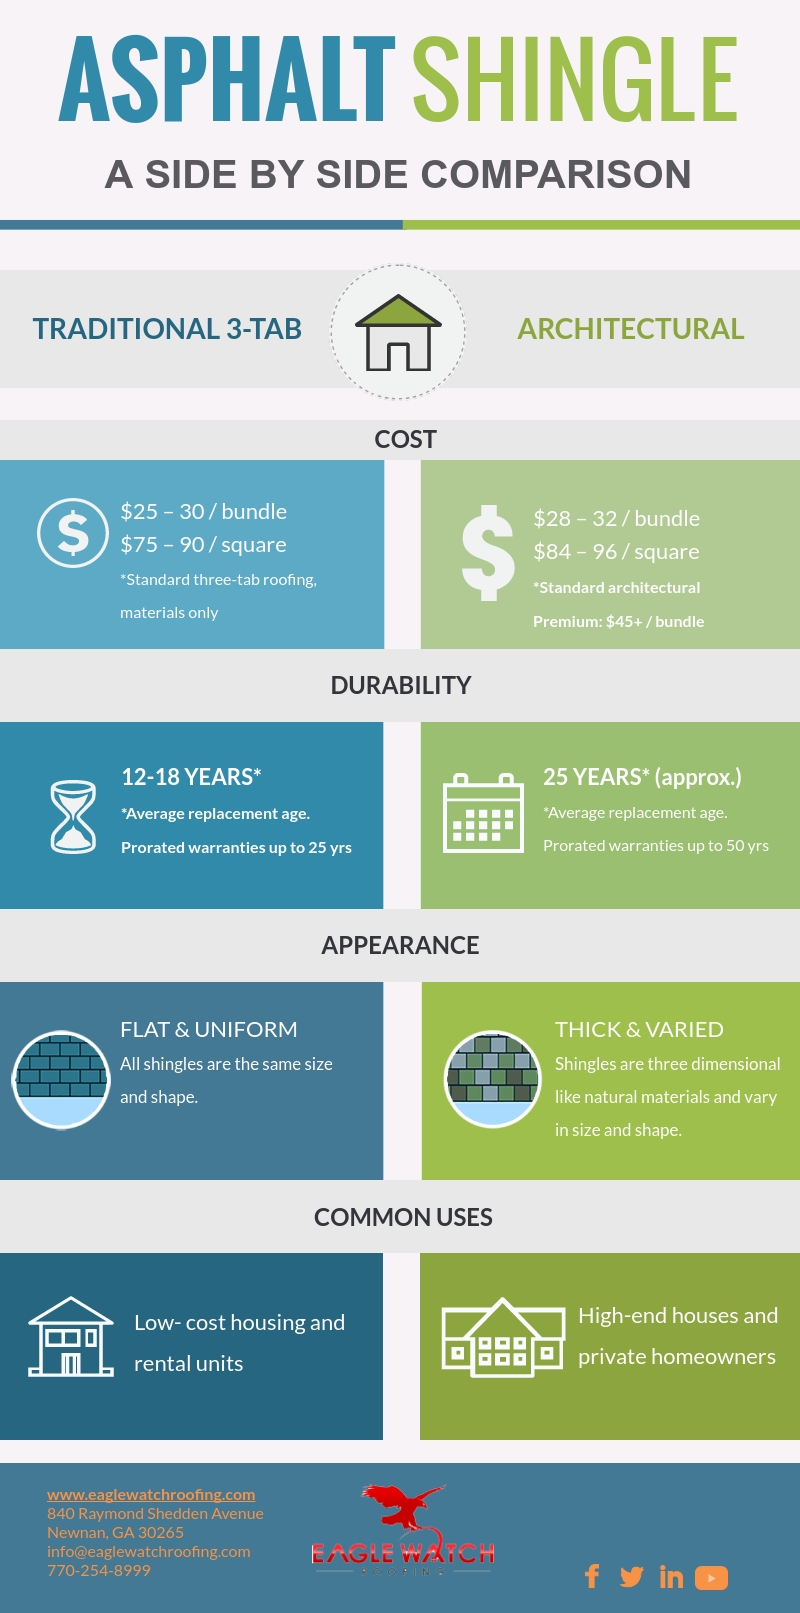 Things to Consider Before Installing an Asphalt Shingle Roof [infographic]